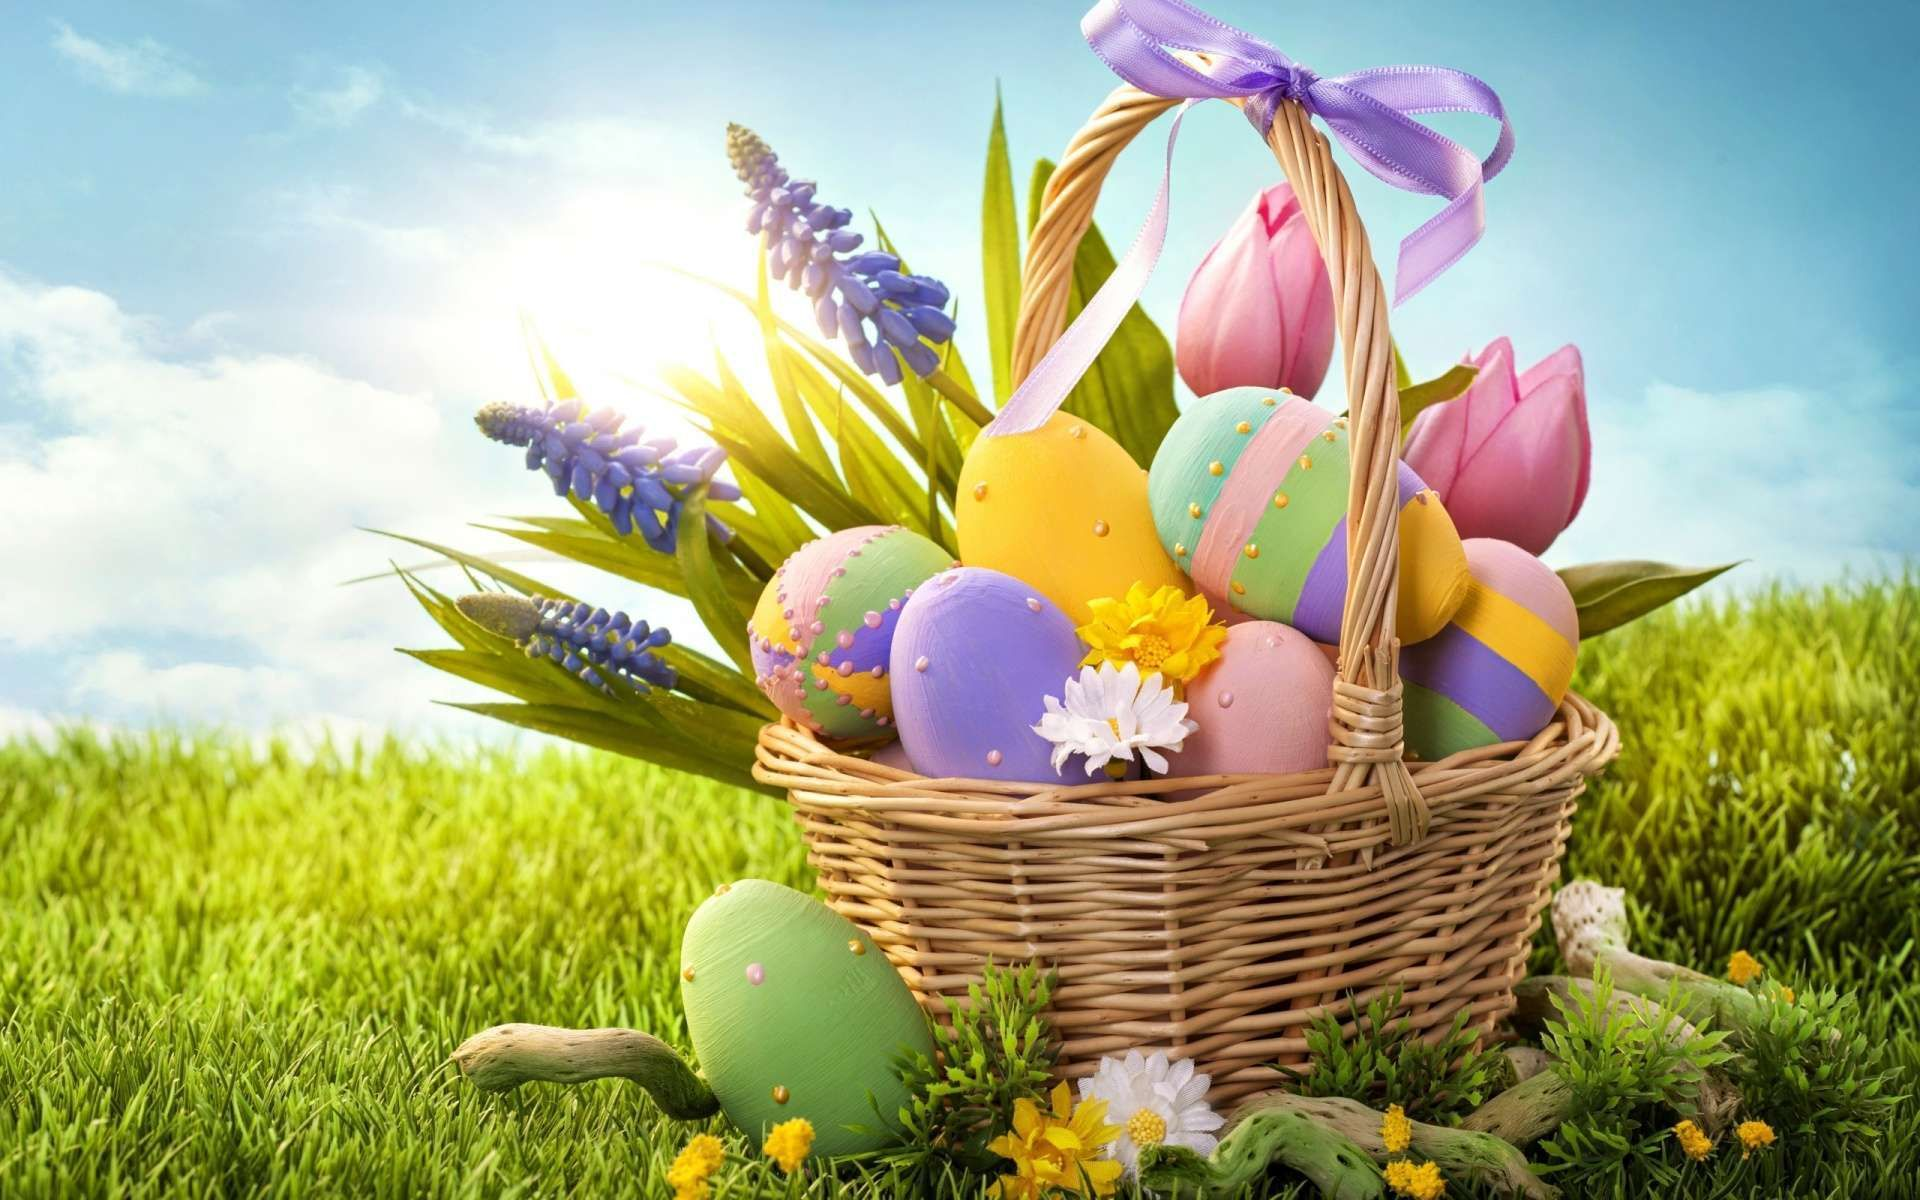 Hd wallpaper easter - Find This Pin And More On Easter Eggs Hd Wallpapers By Ambwallpapers